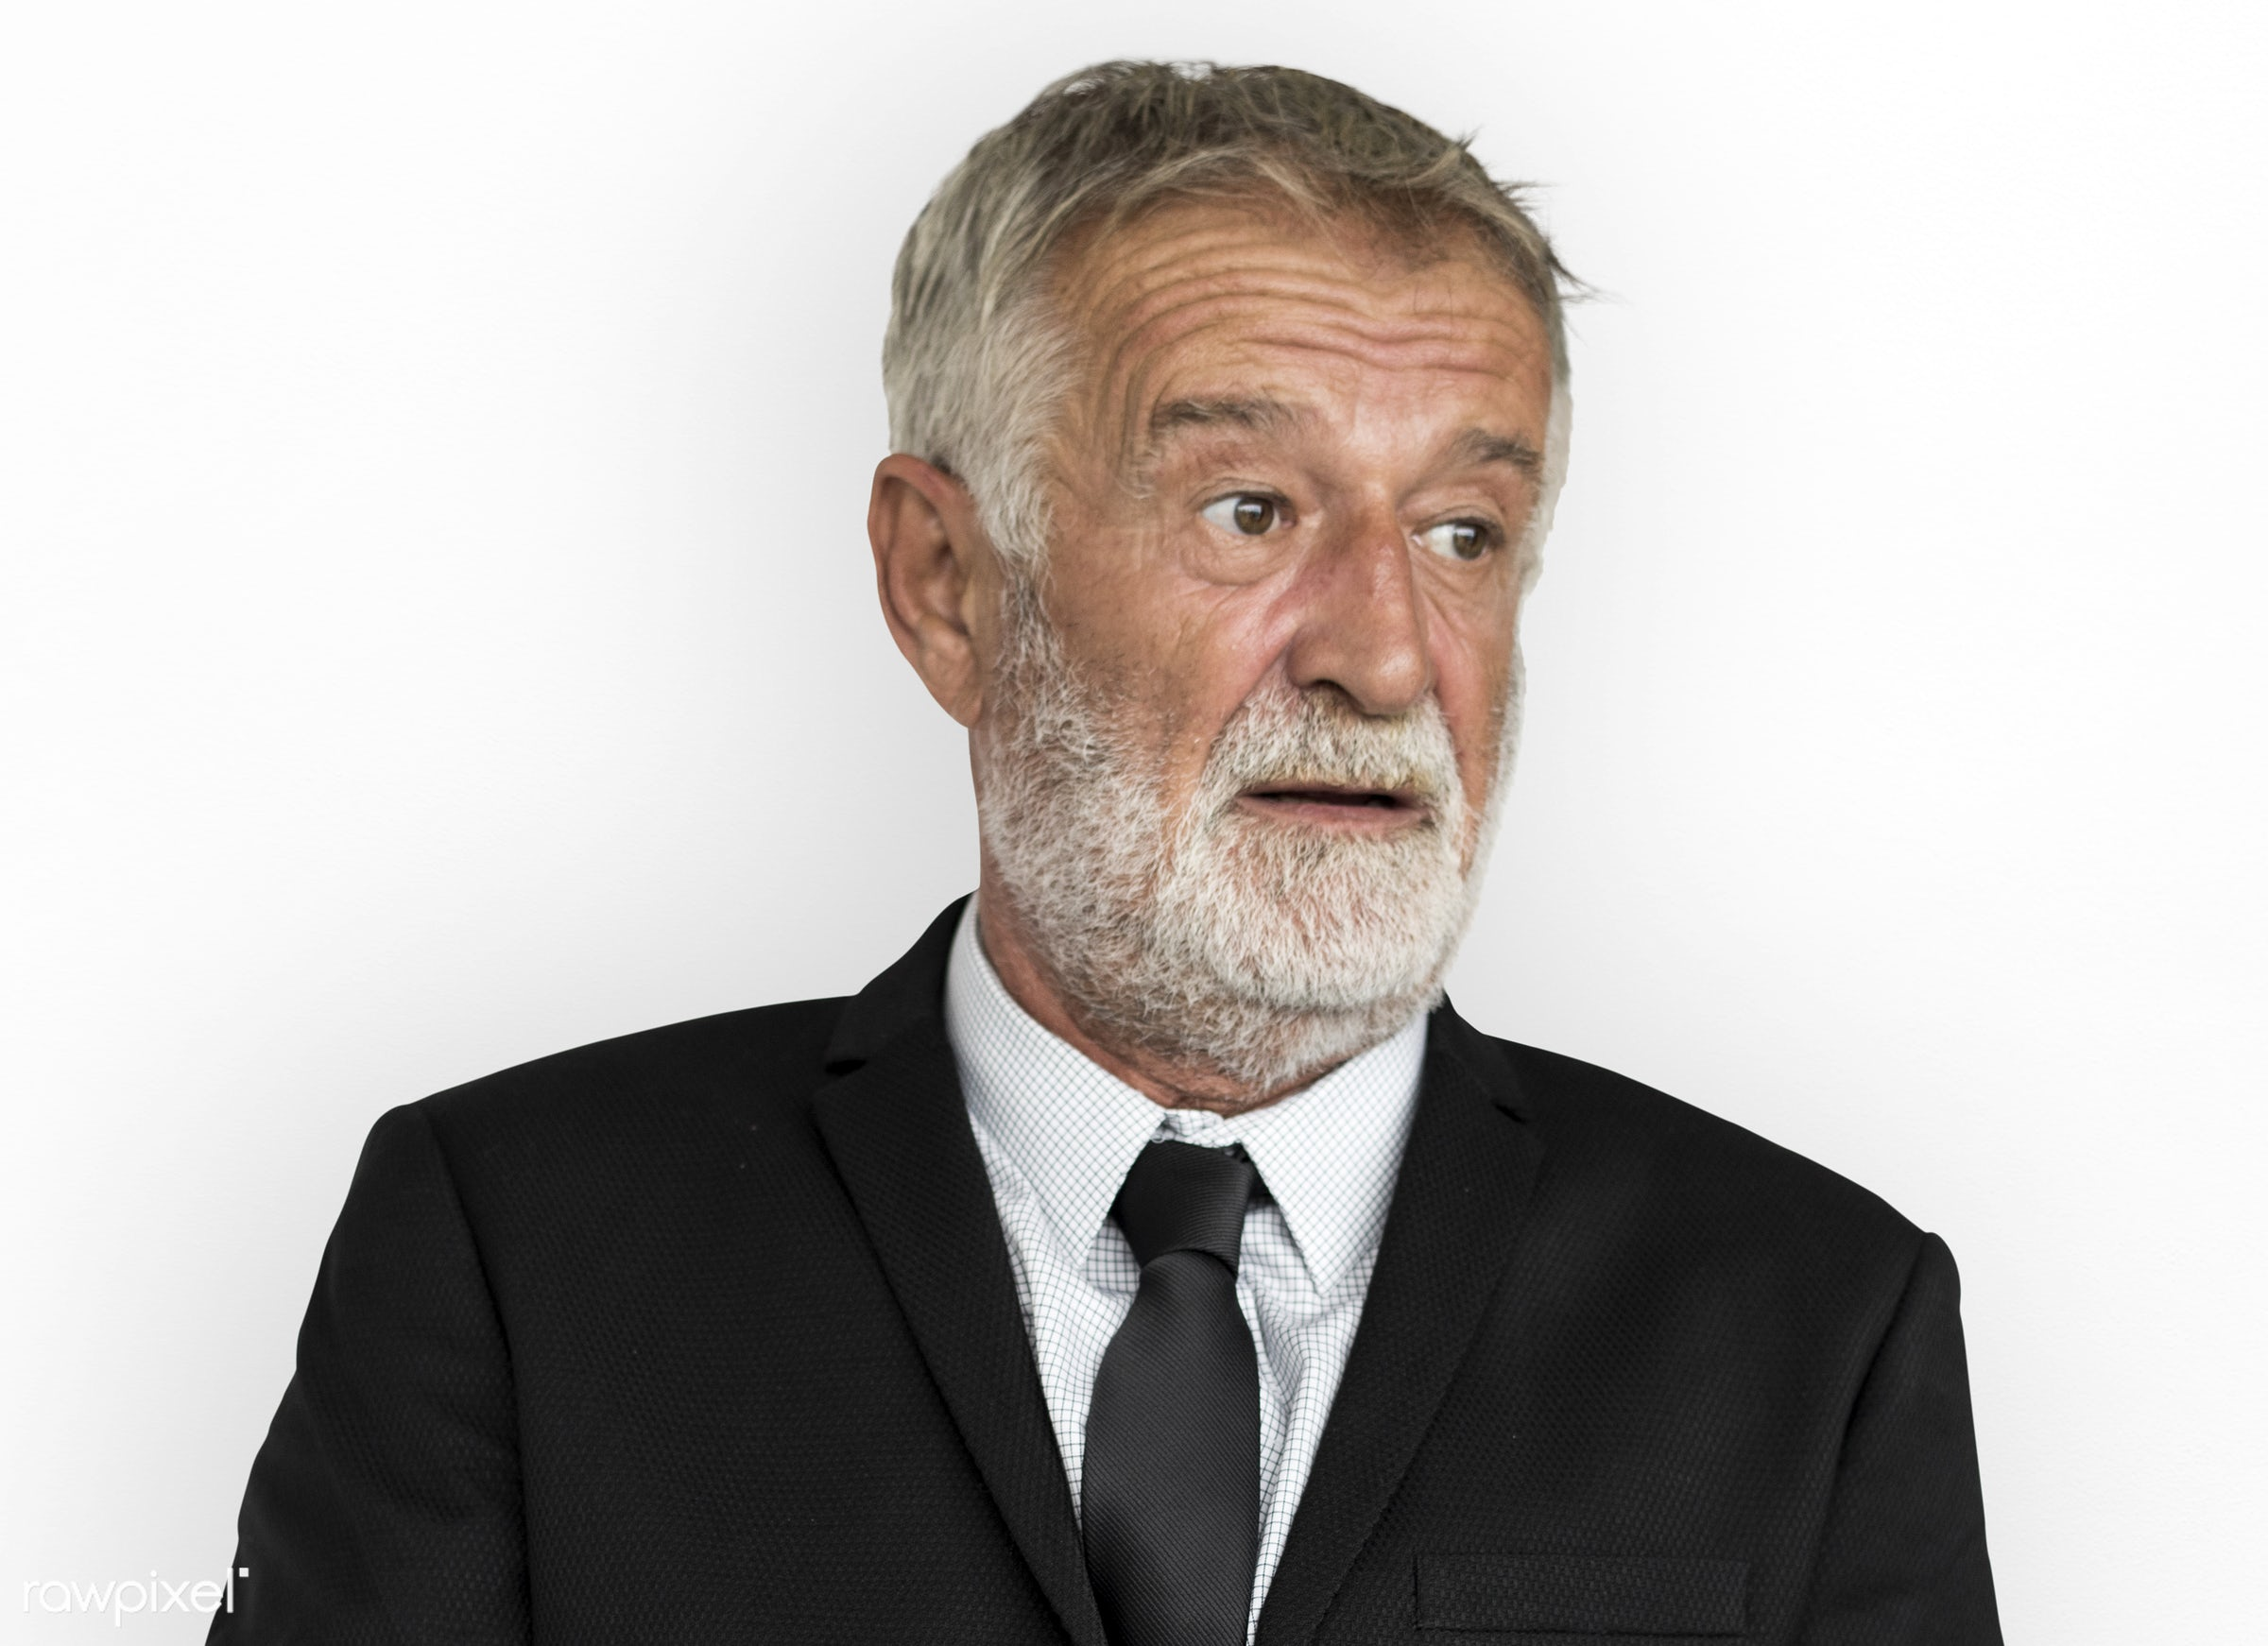 studio, expression, person, old, isolated on white, people, business, caucasian, focused, working, serious, man, neutral...